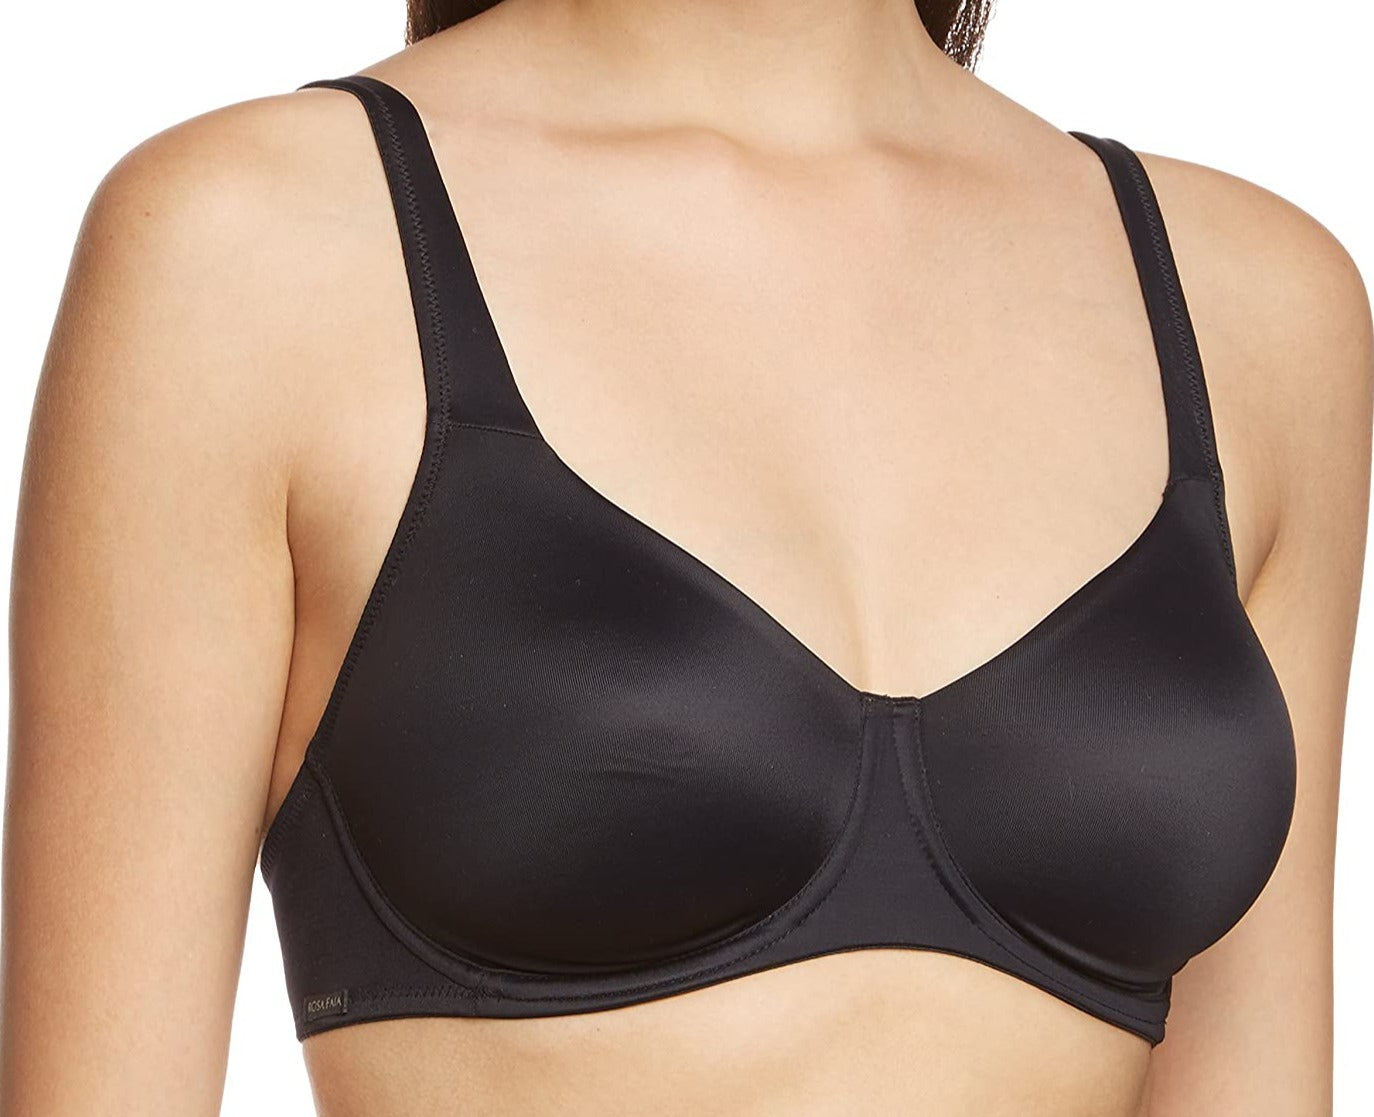 This Rosa Faia bra from Anita, Twin, is a great everyday staple bra. A full coverage bra made of a silky soft fabric. Color black. Style 5688.